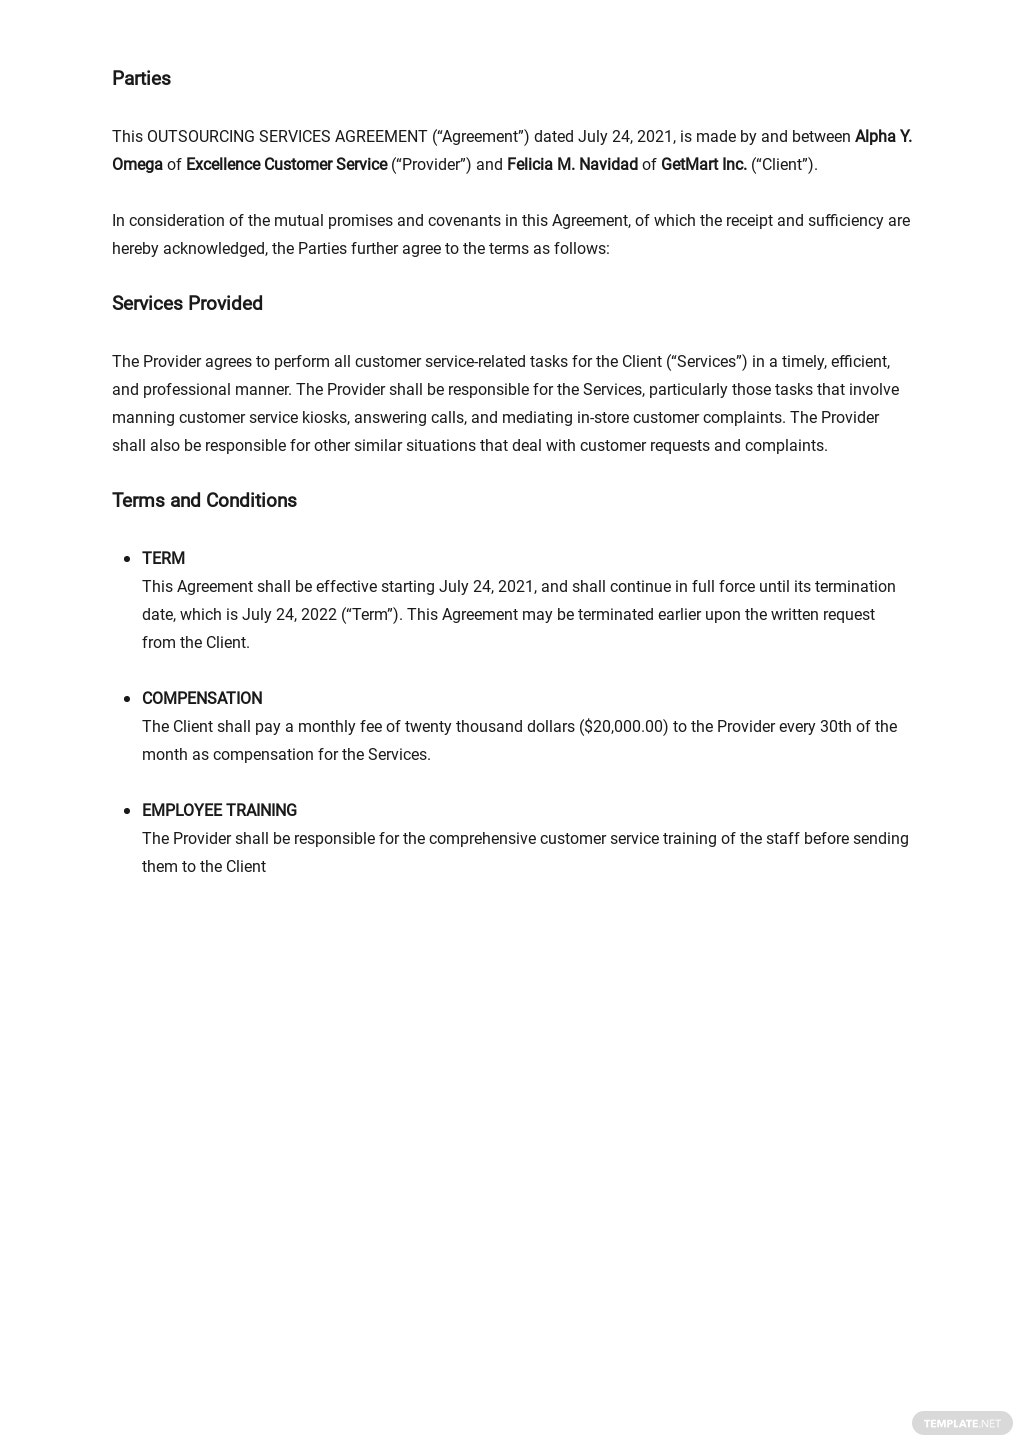 Outsourcing Services Agreement Template 1.jpe